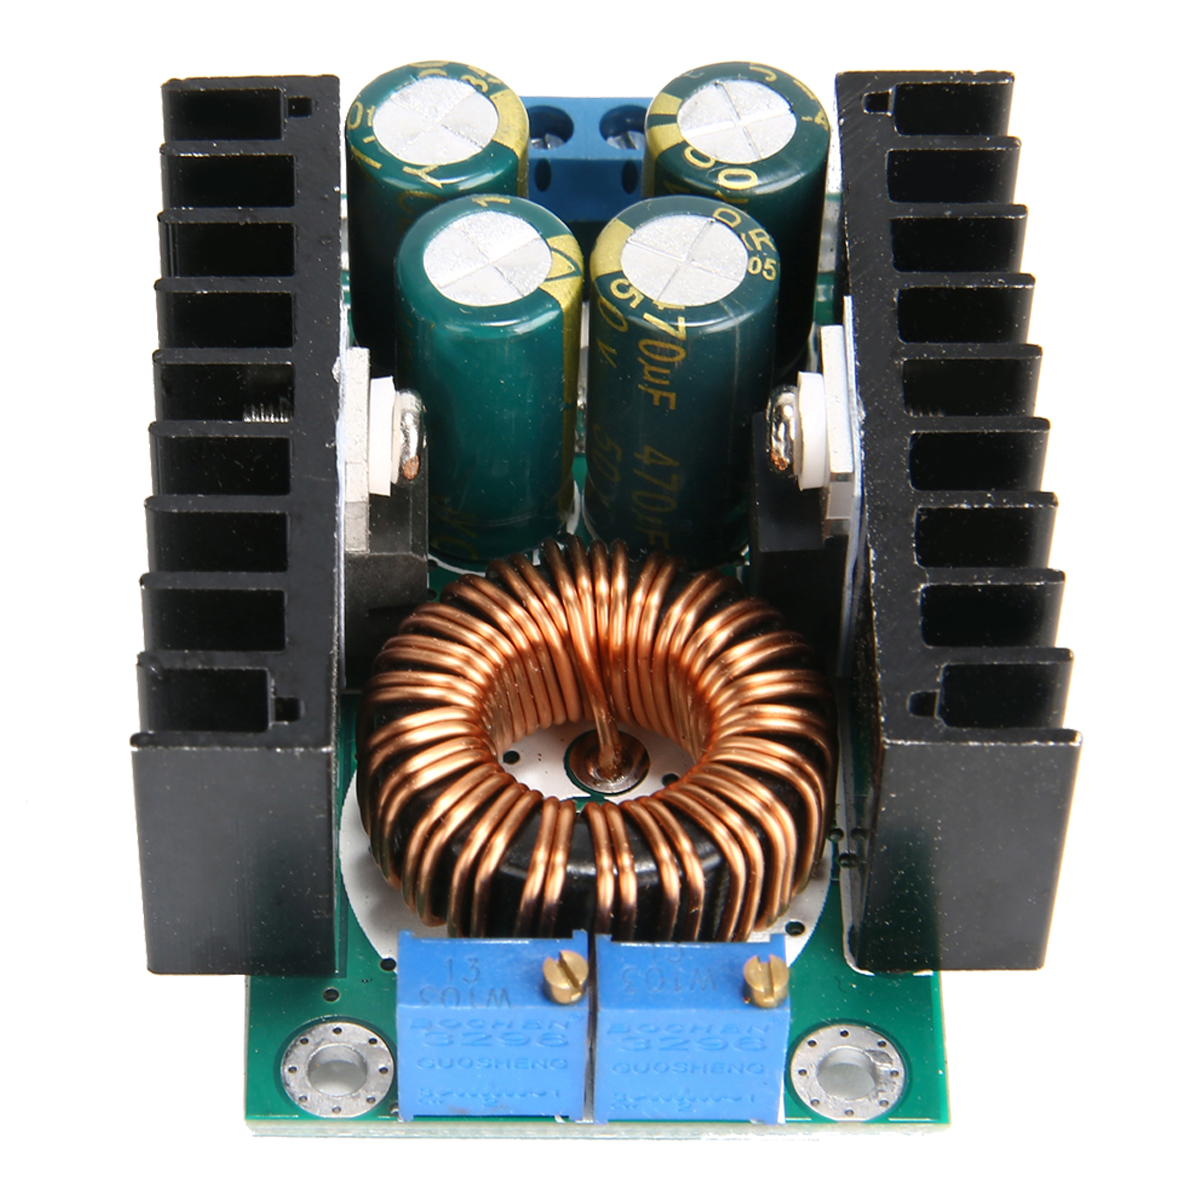 1pc DC - DC CC CV 9A 300W Step Down Buck Constant Current Converter 5-40V To 1.2-35V Voltage Power Module Electrical Equipment